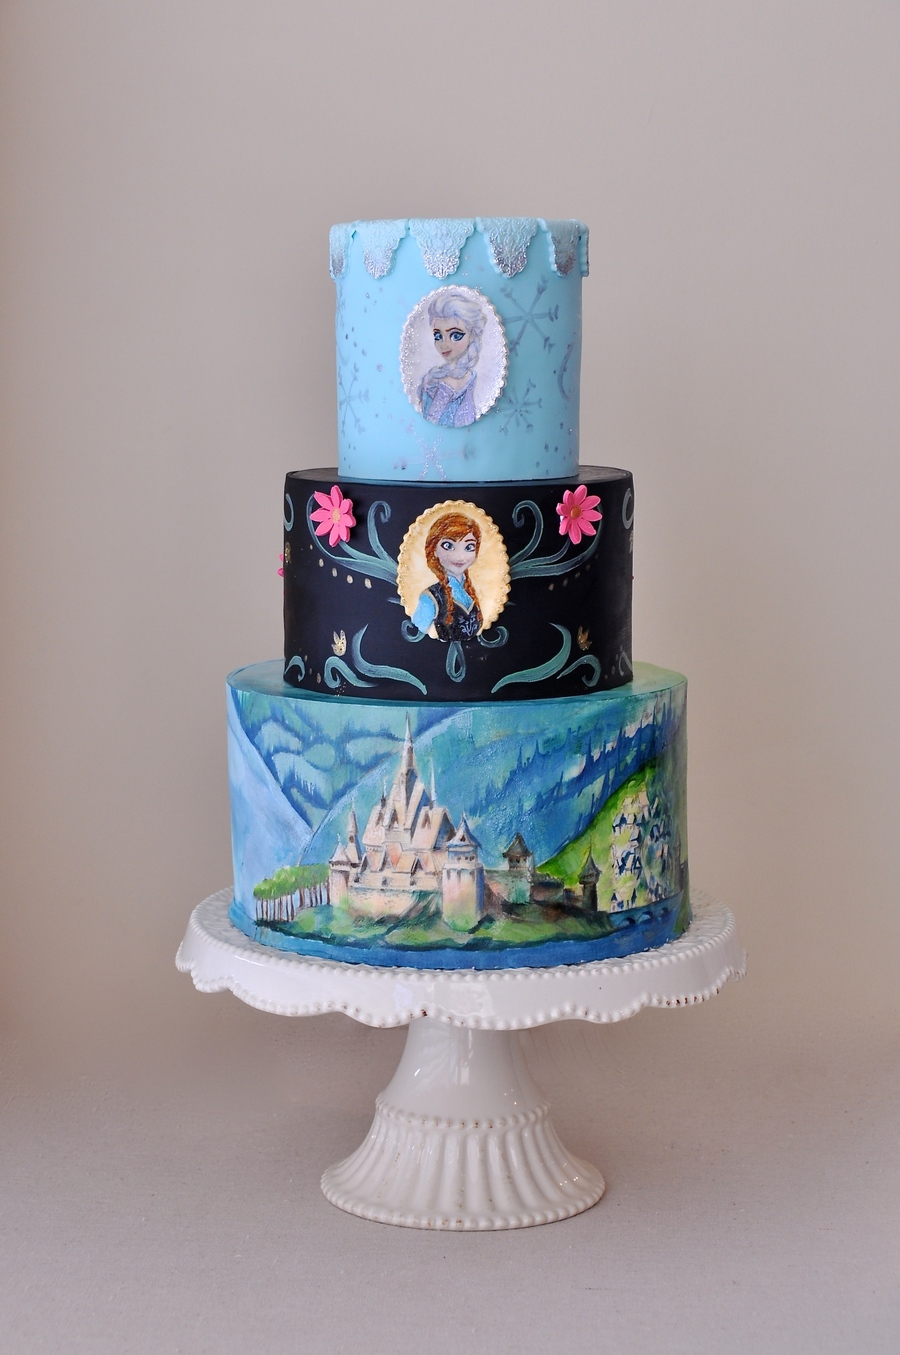 Frozen Themed Cake Designed By Ashley Steinhauer Blush